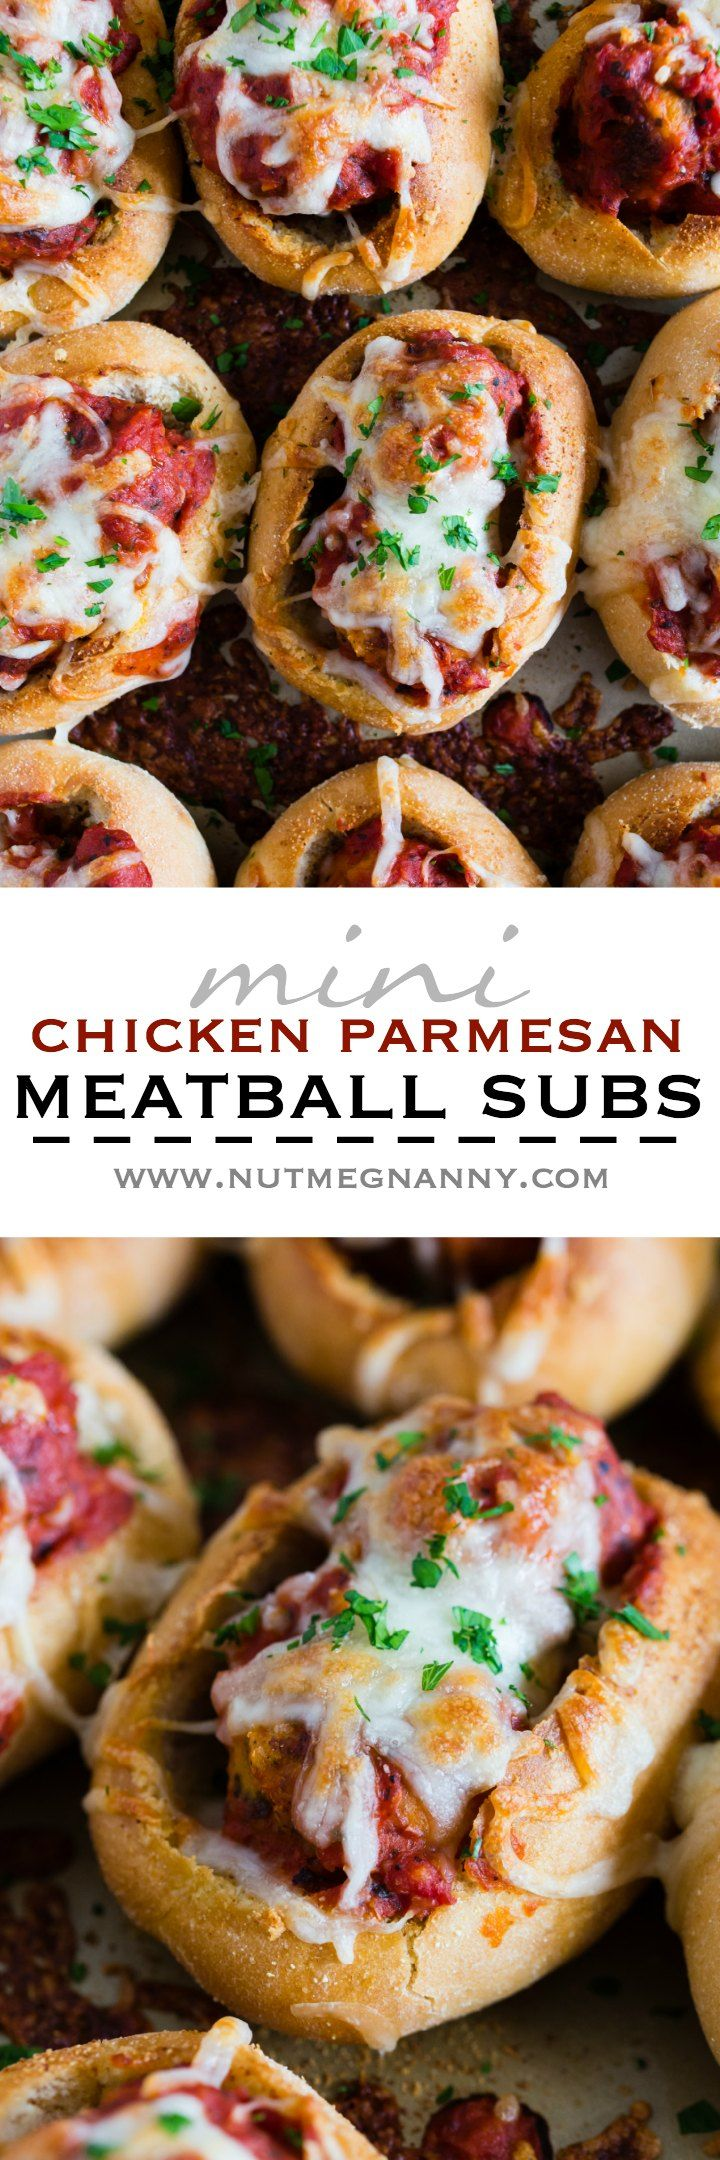 These mini chicken Parmesan meatballs subs totally step up your game day food! Stuffed with homemade chicken Parmesan meatballs, tomato sauce and topped with lots of melty mozzarella cheese. Crazy delicious and ready in under an hour!